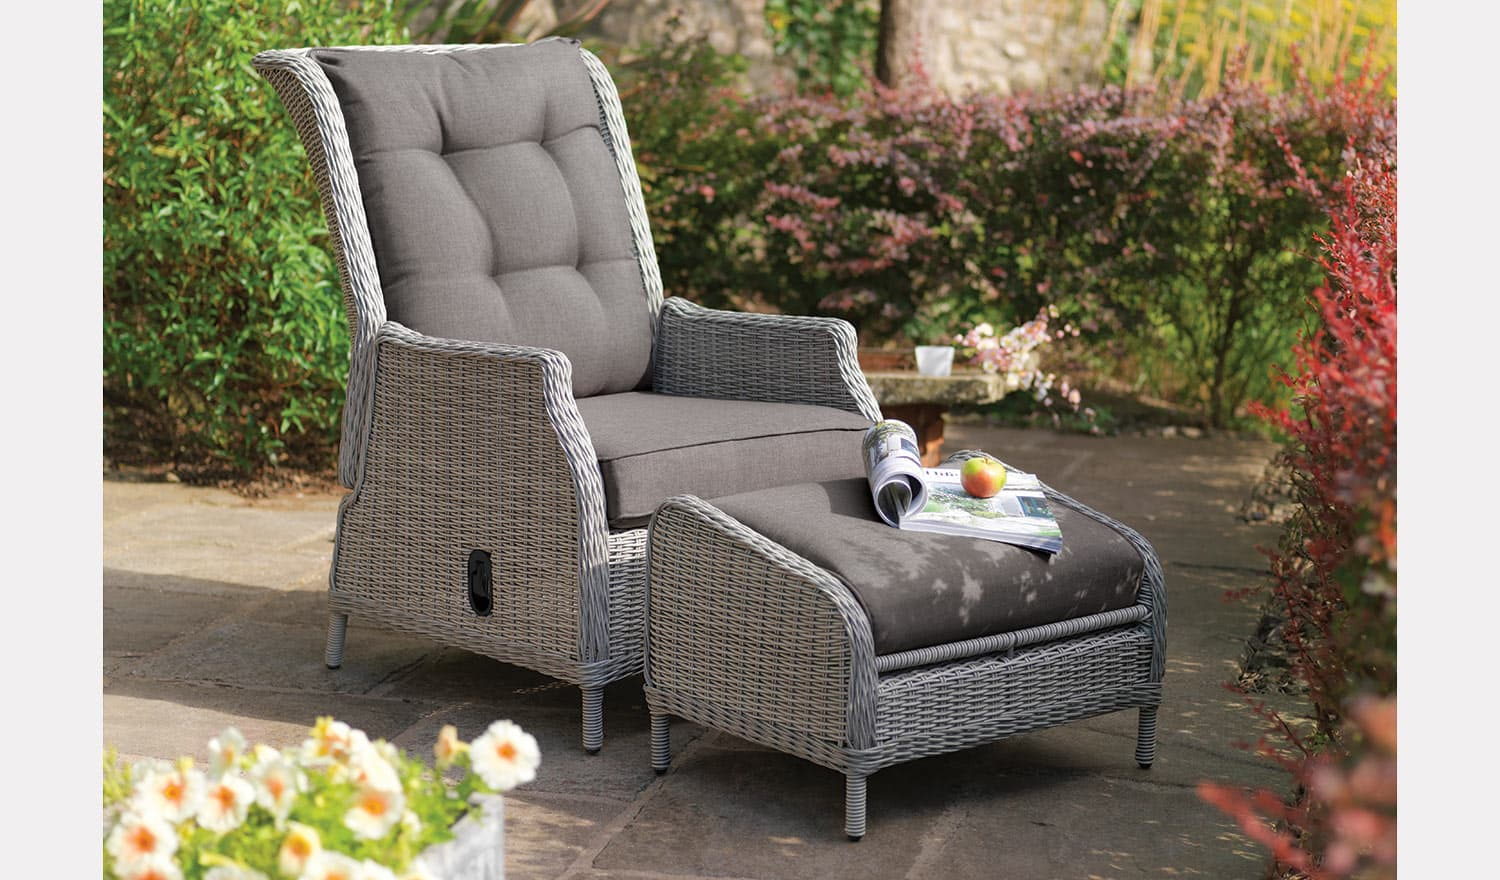 Classic Recliner With Footstool Garden Furniture Kettler Official Site